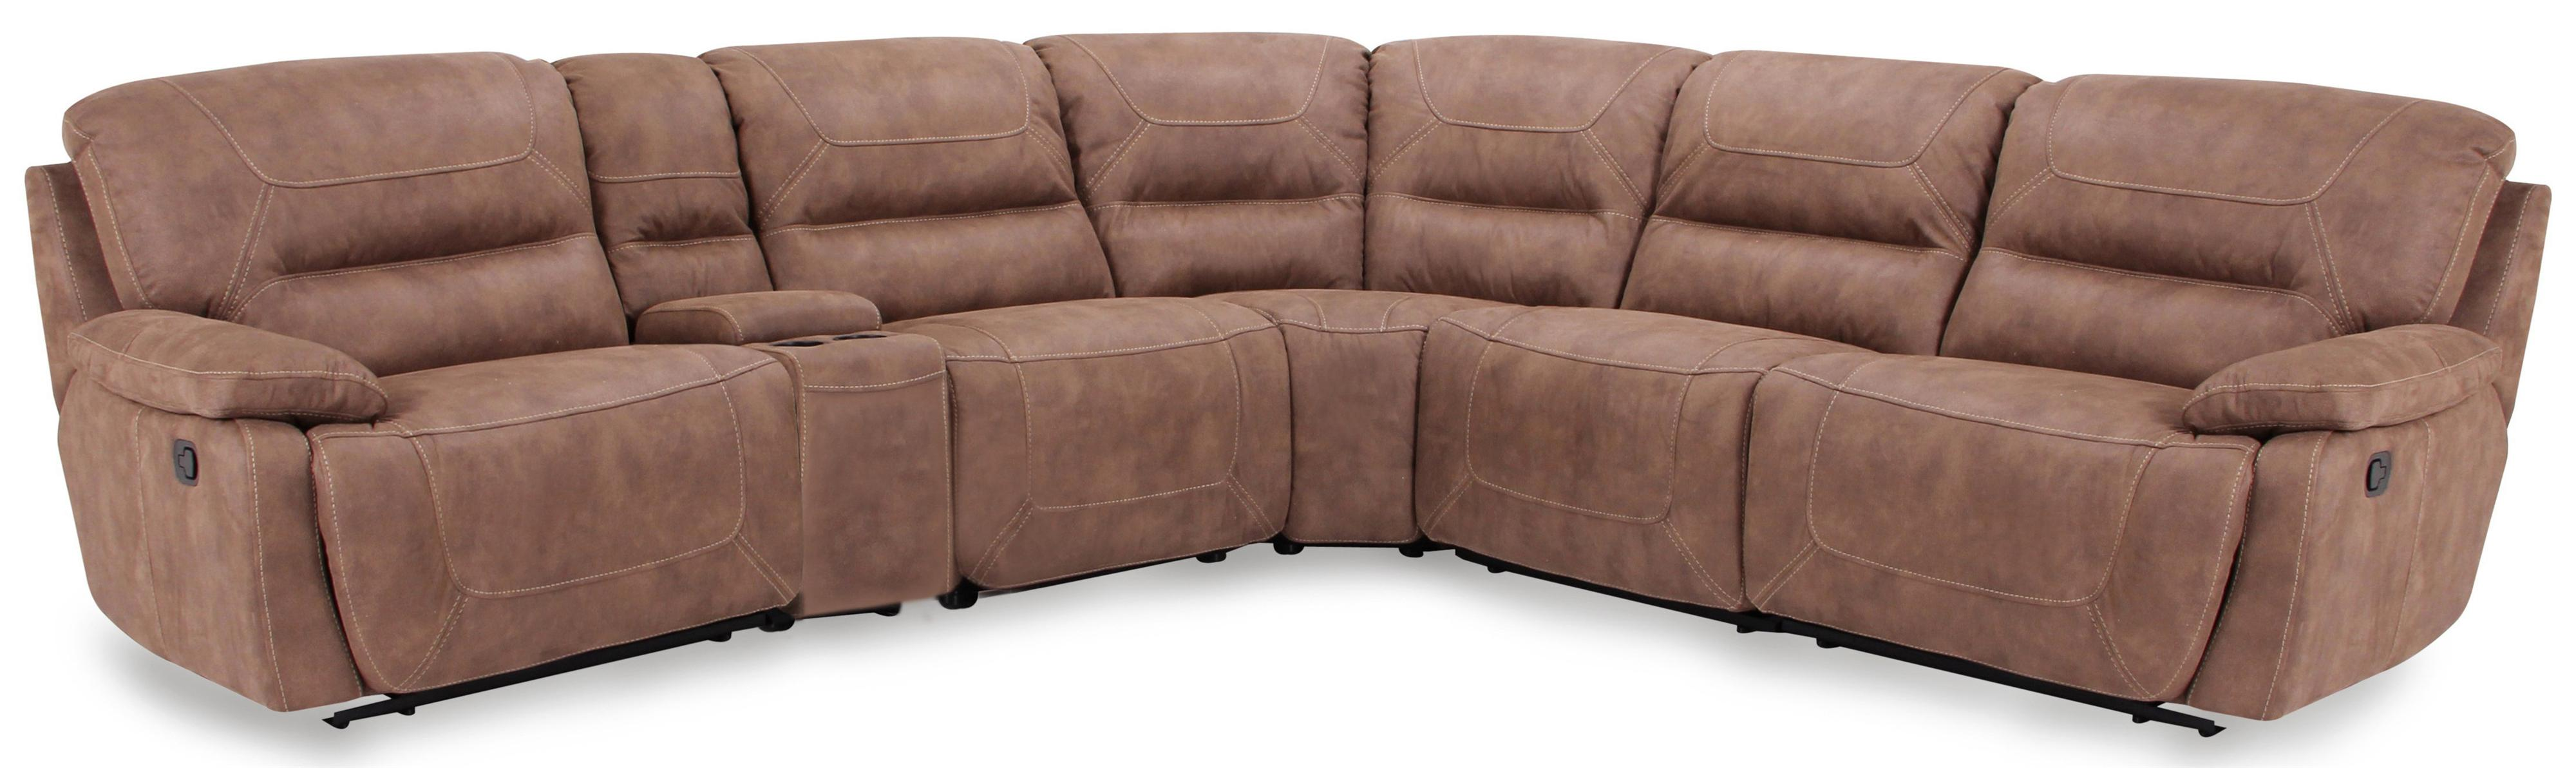 htl sofa range chaise lounge beds uk 9160 contemporary power reclining sectional fashion